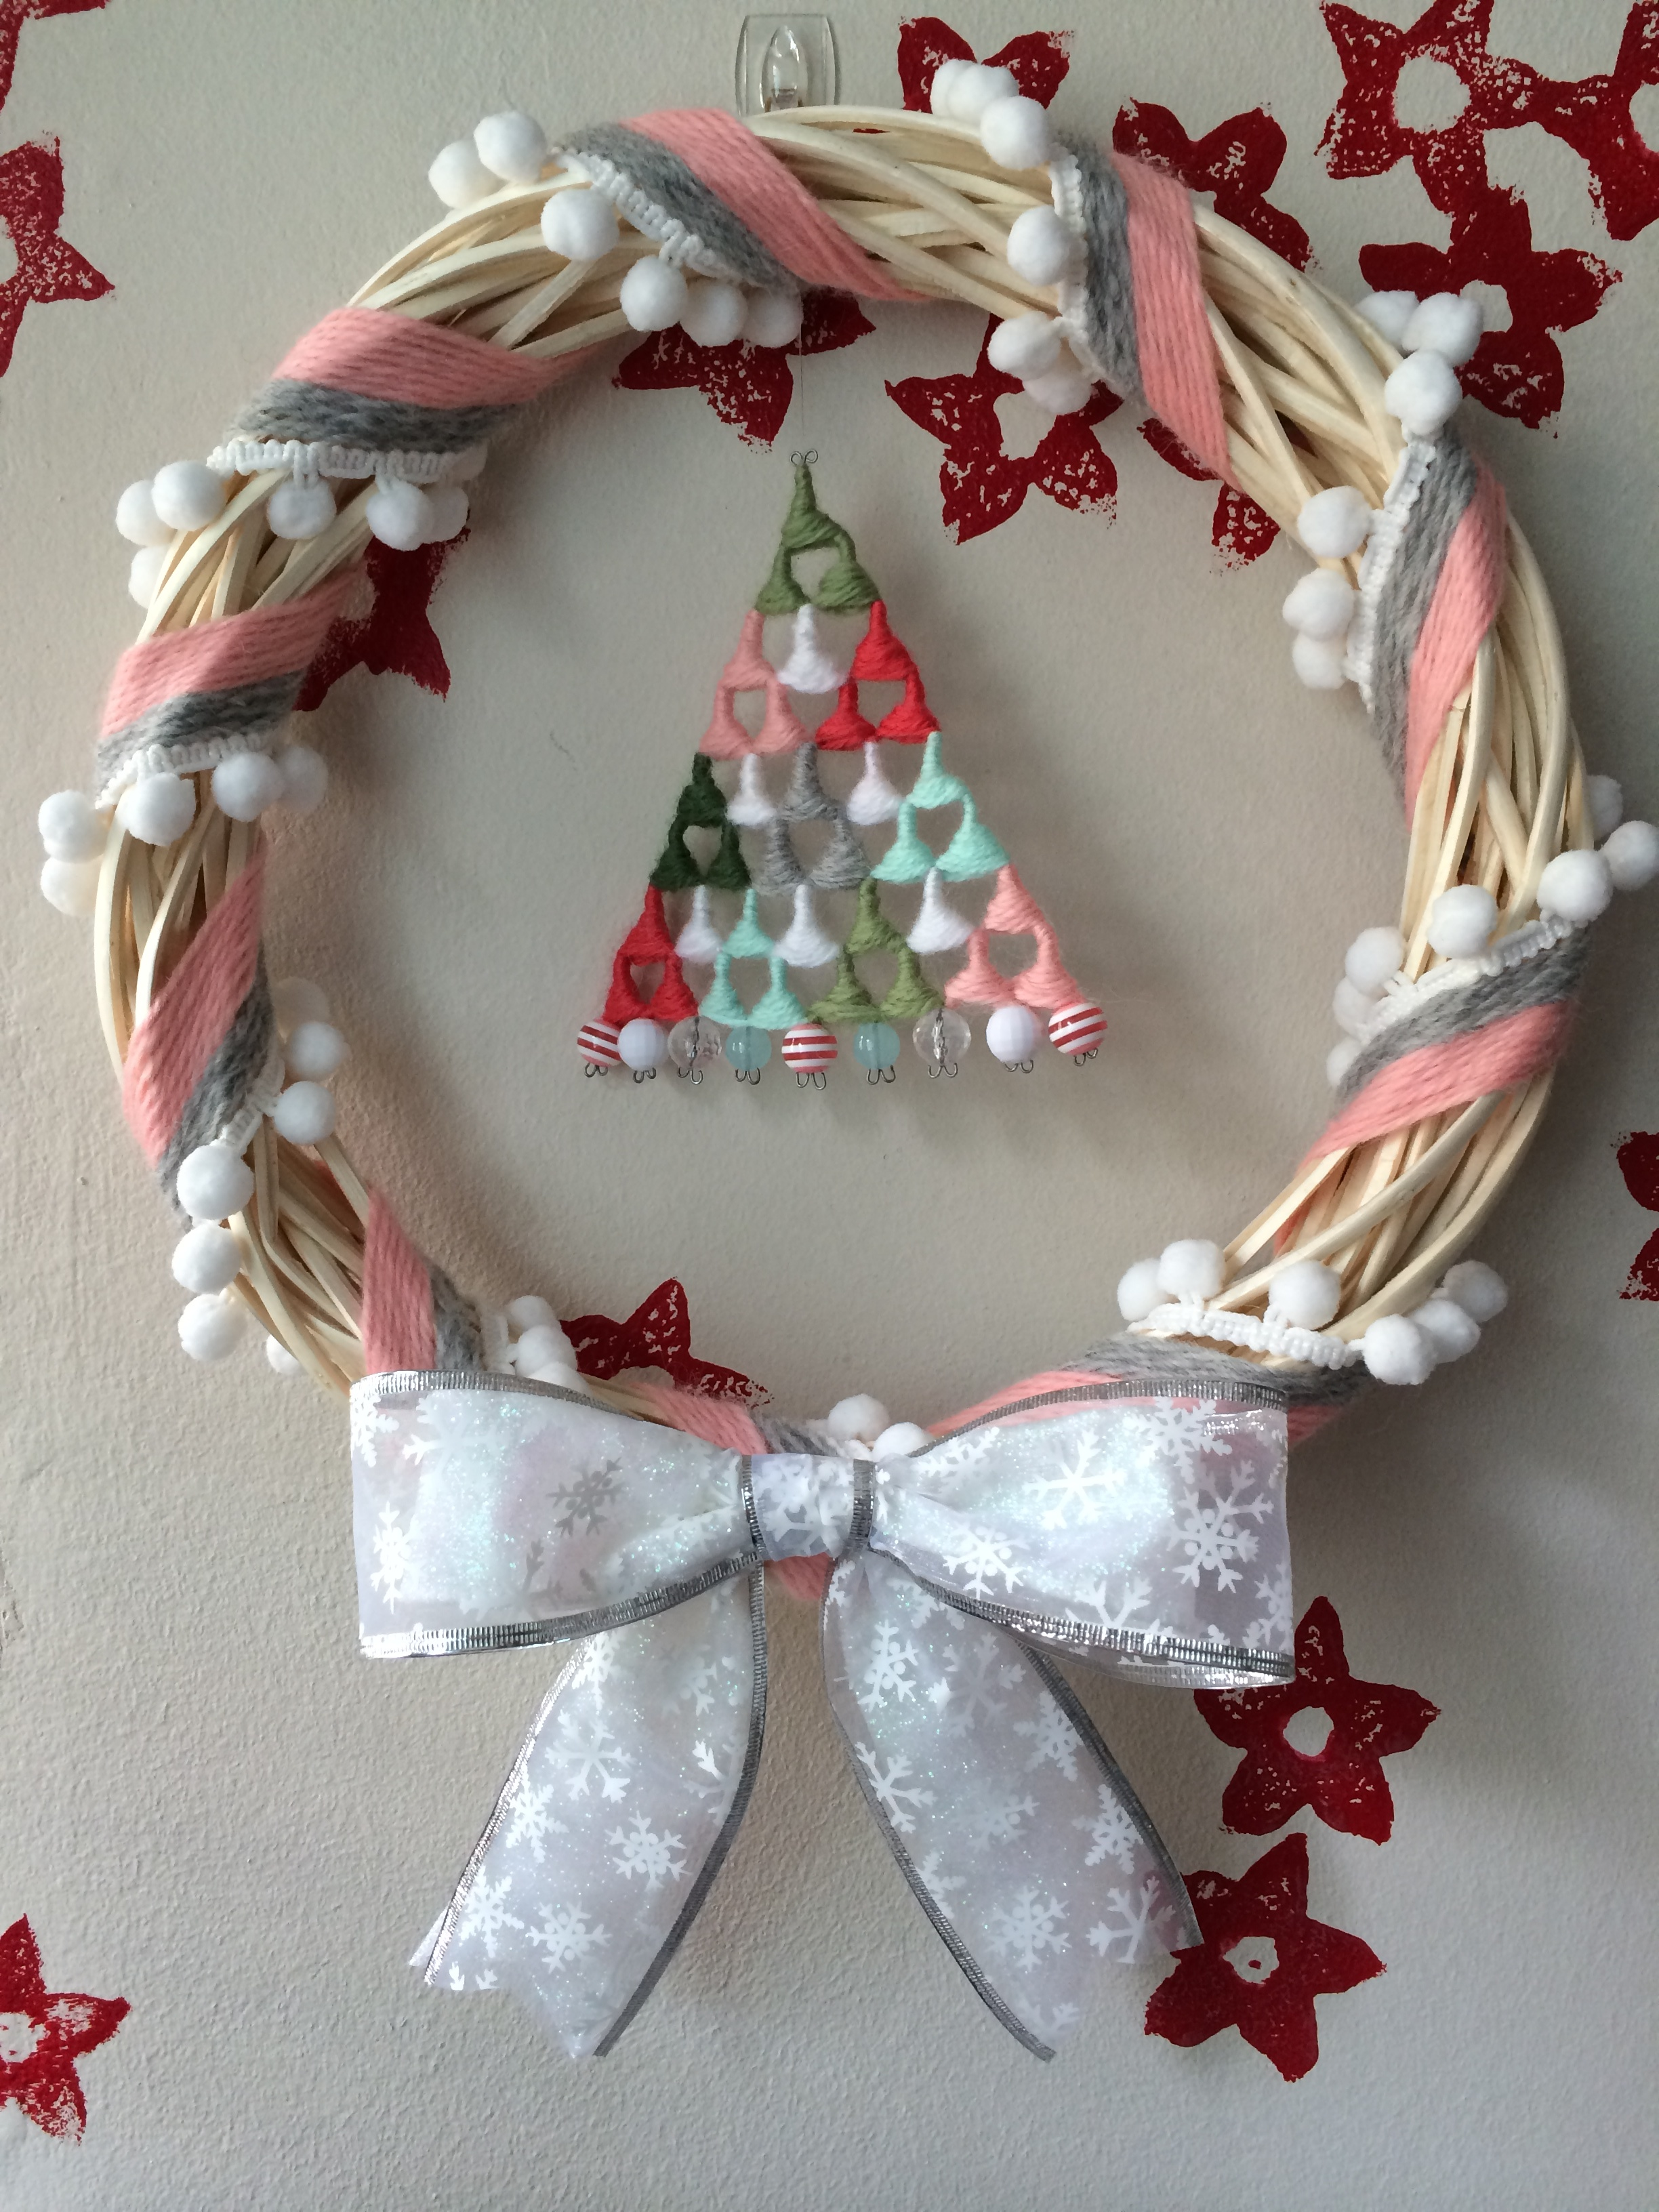 Christmas Wreath_Strawberry Shortcake_01.jpg